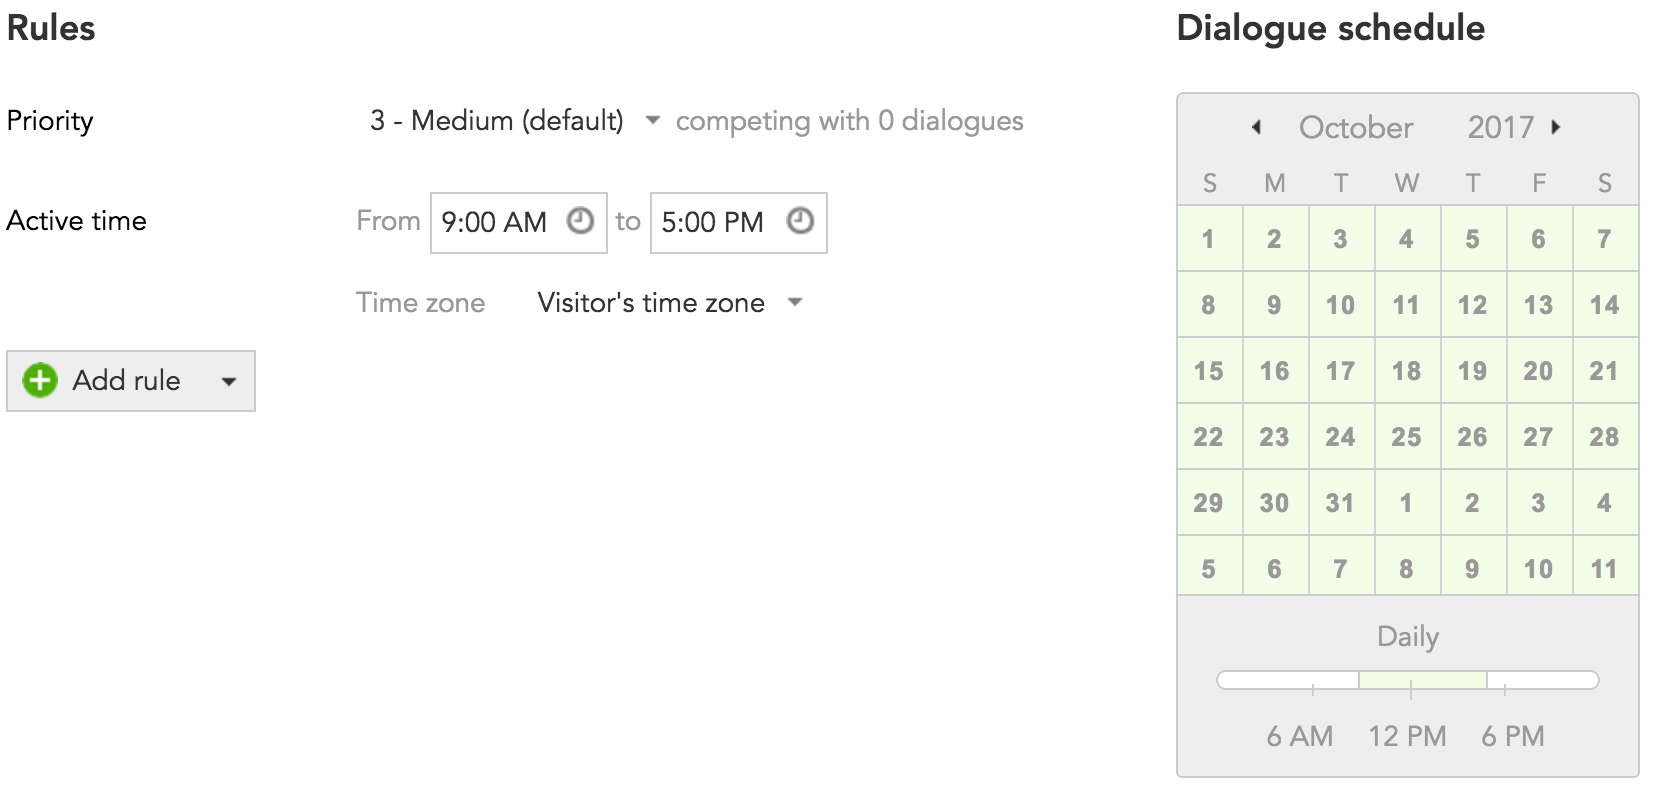 How to set the active time for a custom content Dialogue in the BlueConic marketing CDP